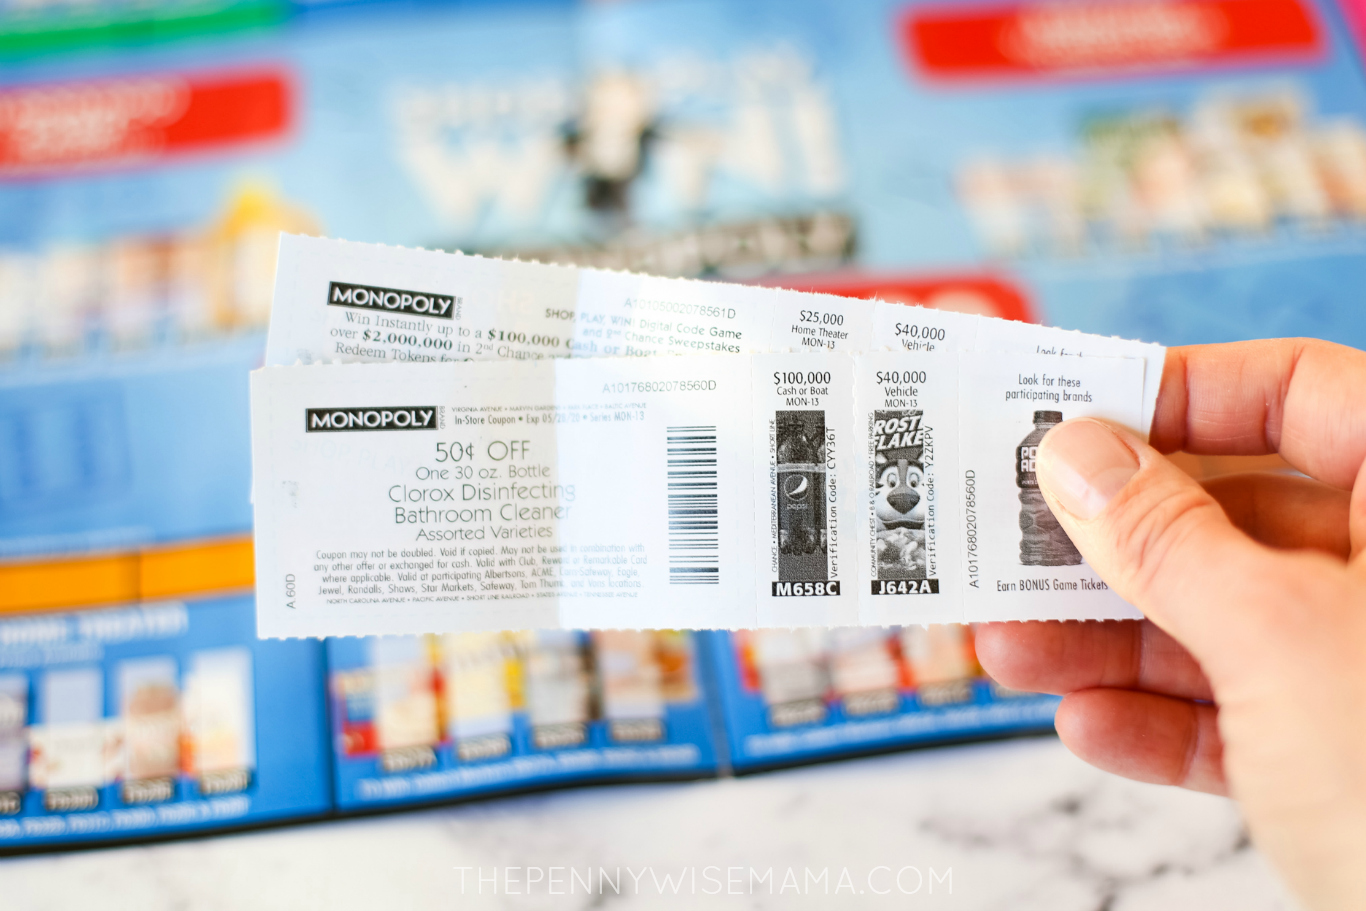 Safeway Monopoly Game Coupons